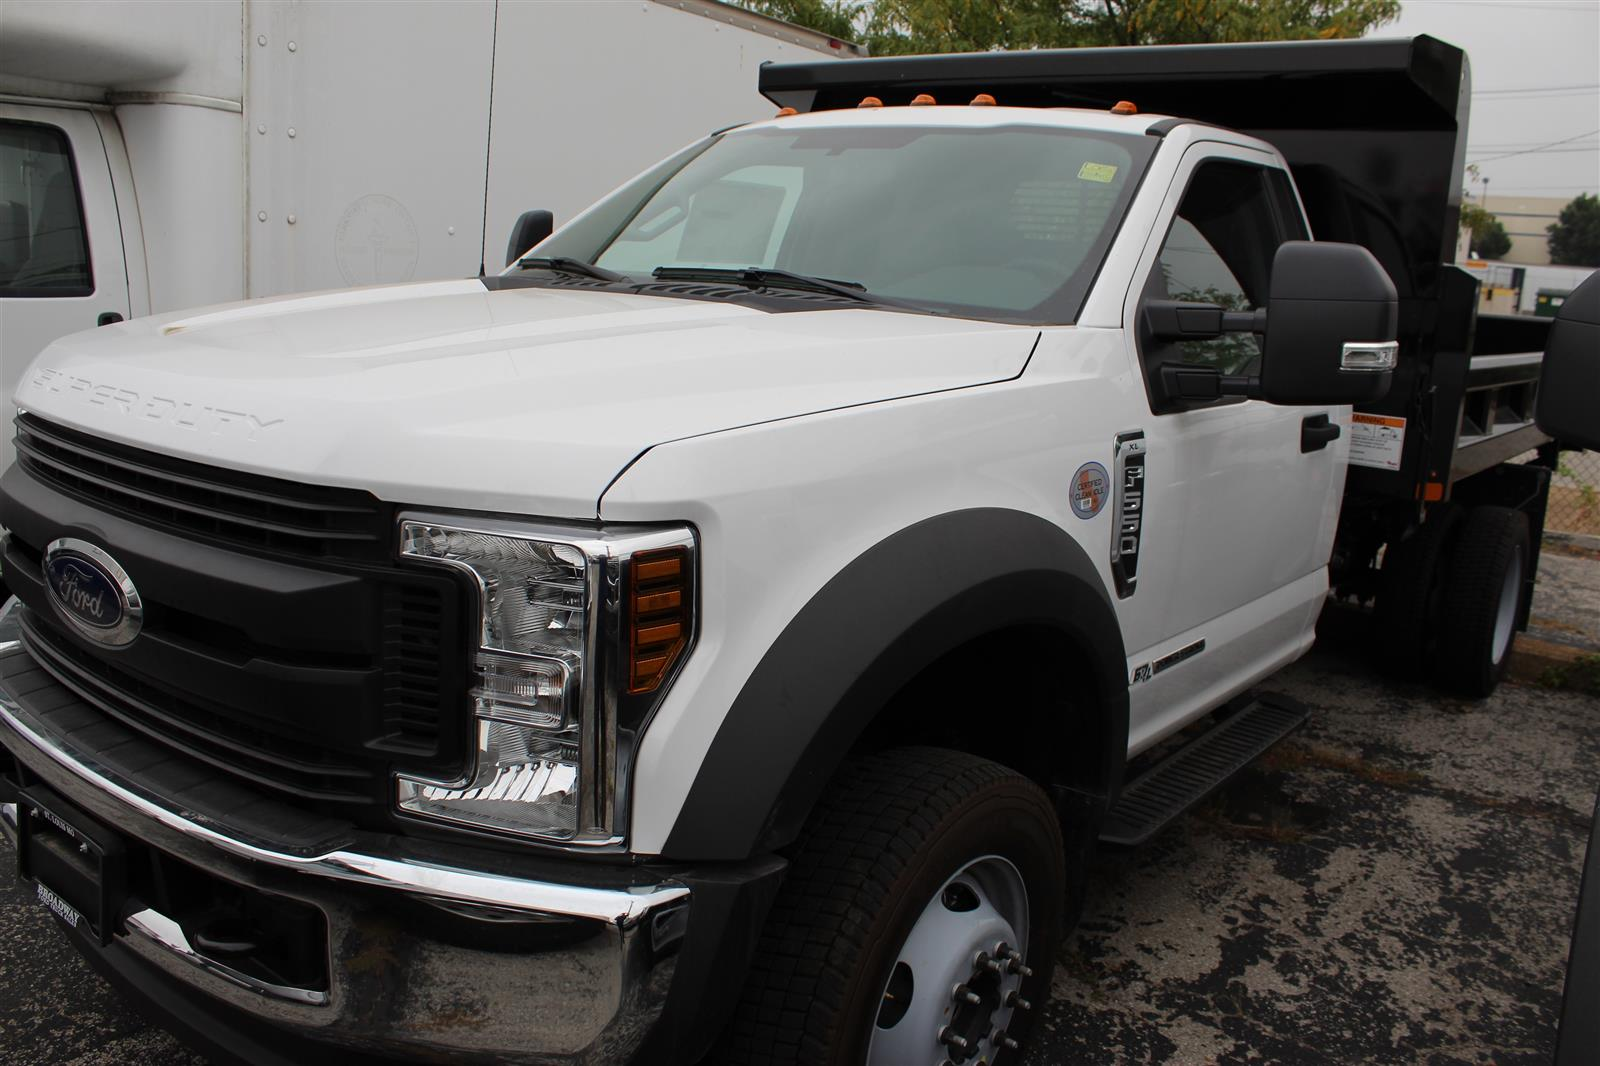 2019 Ford F-550 Regular Cab DRW 4x4, Rugby Dump Body #4145 - photo 1